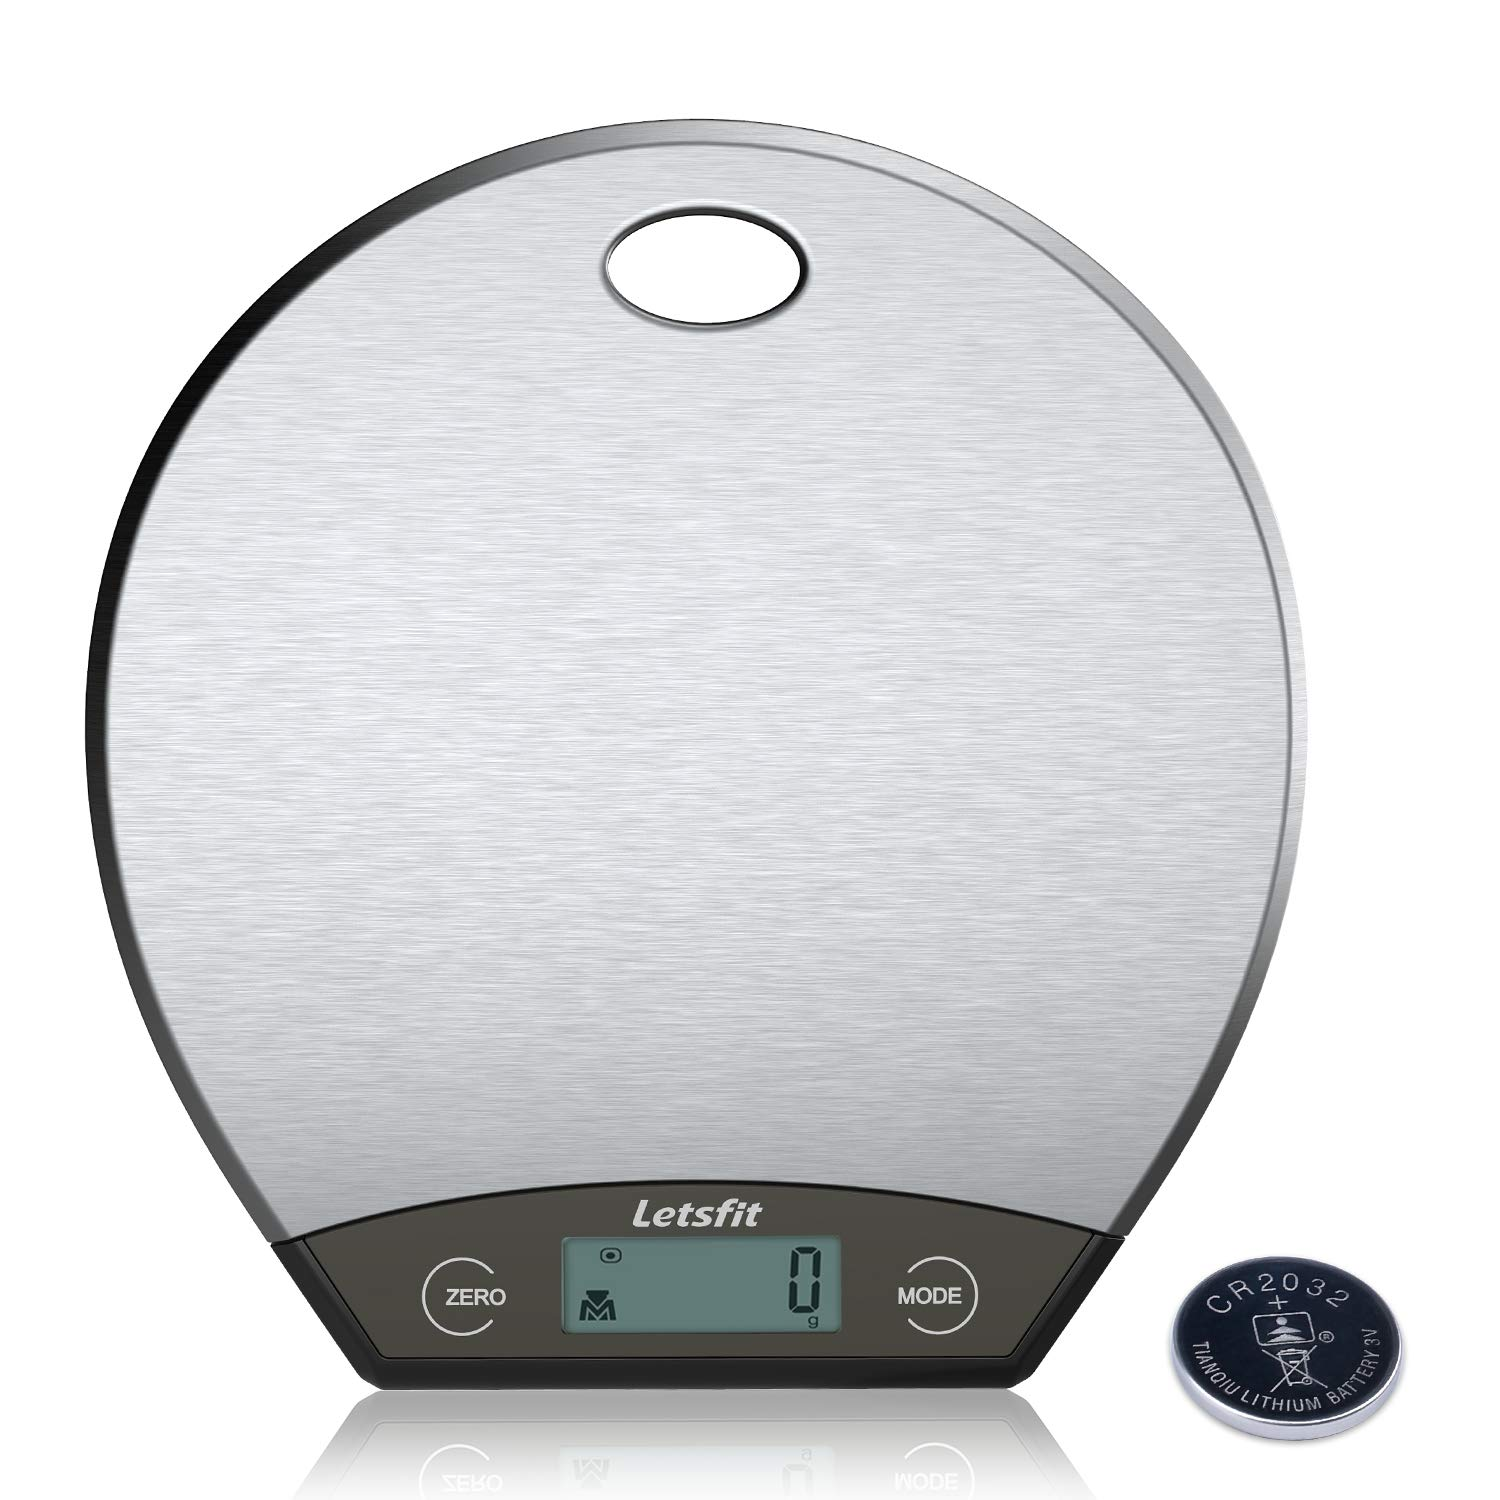 Letsfit Digital Kitchen Scale, Hanging Food Scales with LCD Display, Stainless Steel, 0.1oz (1g) to 11lbs (5000g), Battery Included by Letsfit